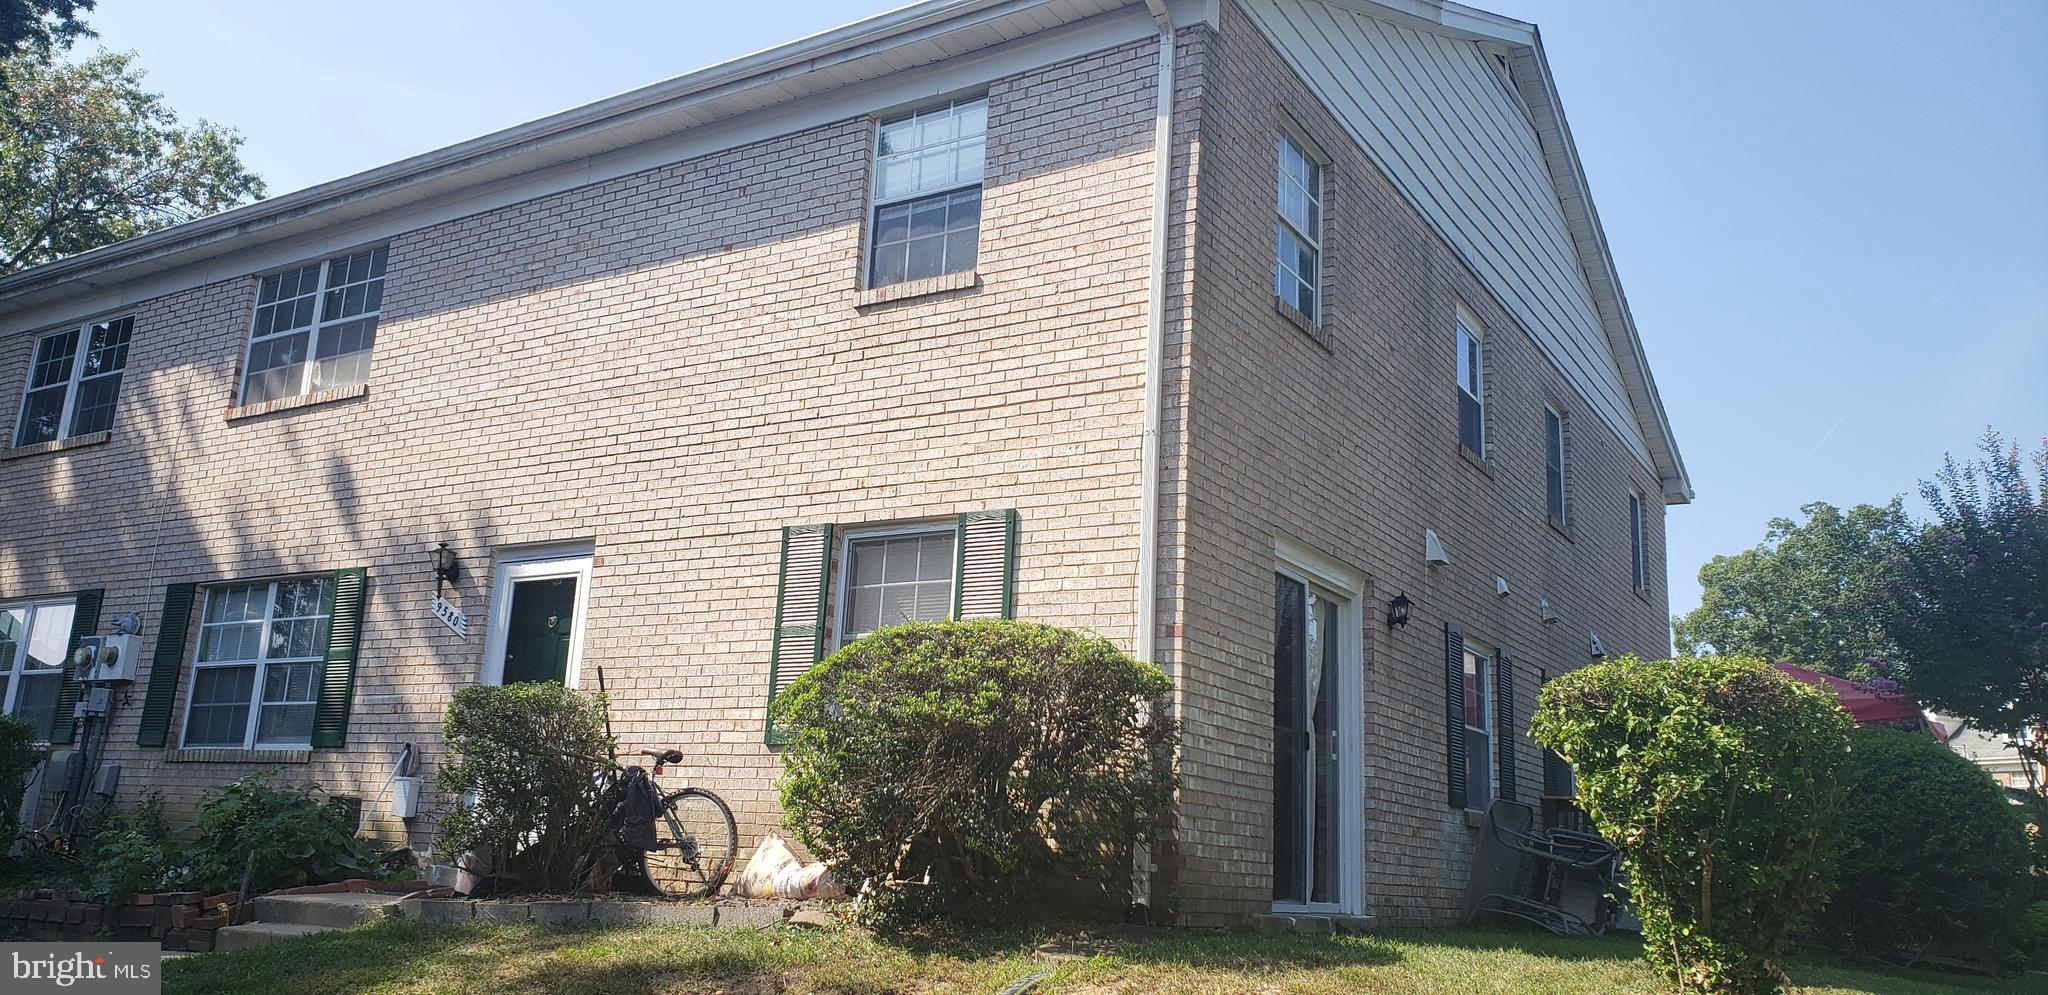 Hard to find all brick 3 Bed 2 Bth townhome in Fairfax County under $250K. Updated Bath and Kitchen hardwood floors Make an offer won't last call 703-864-9802 for a showing!